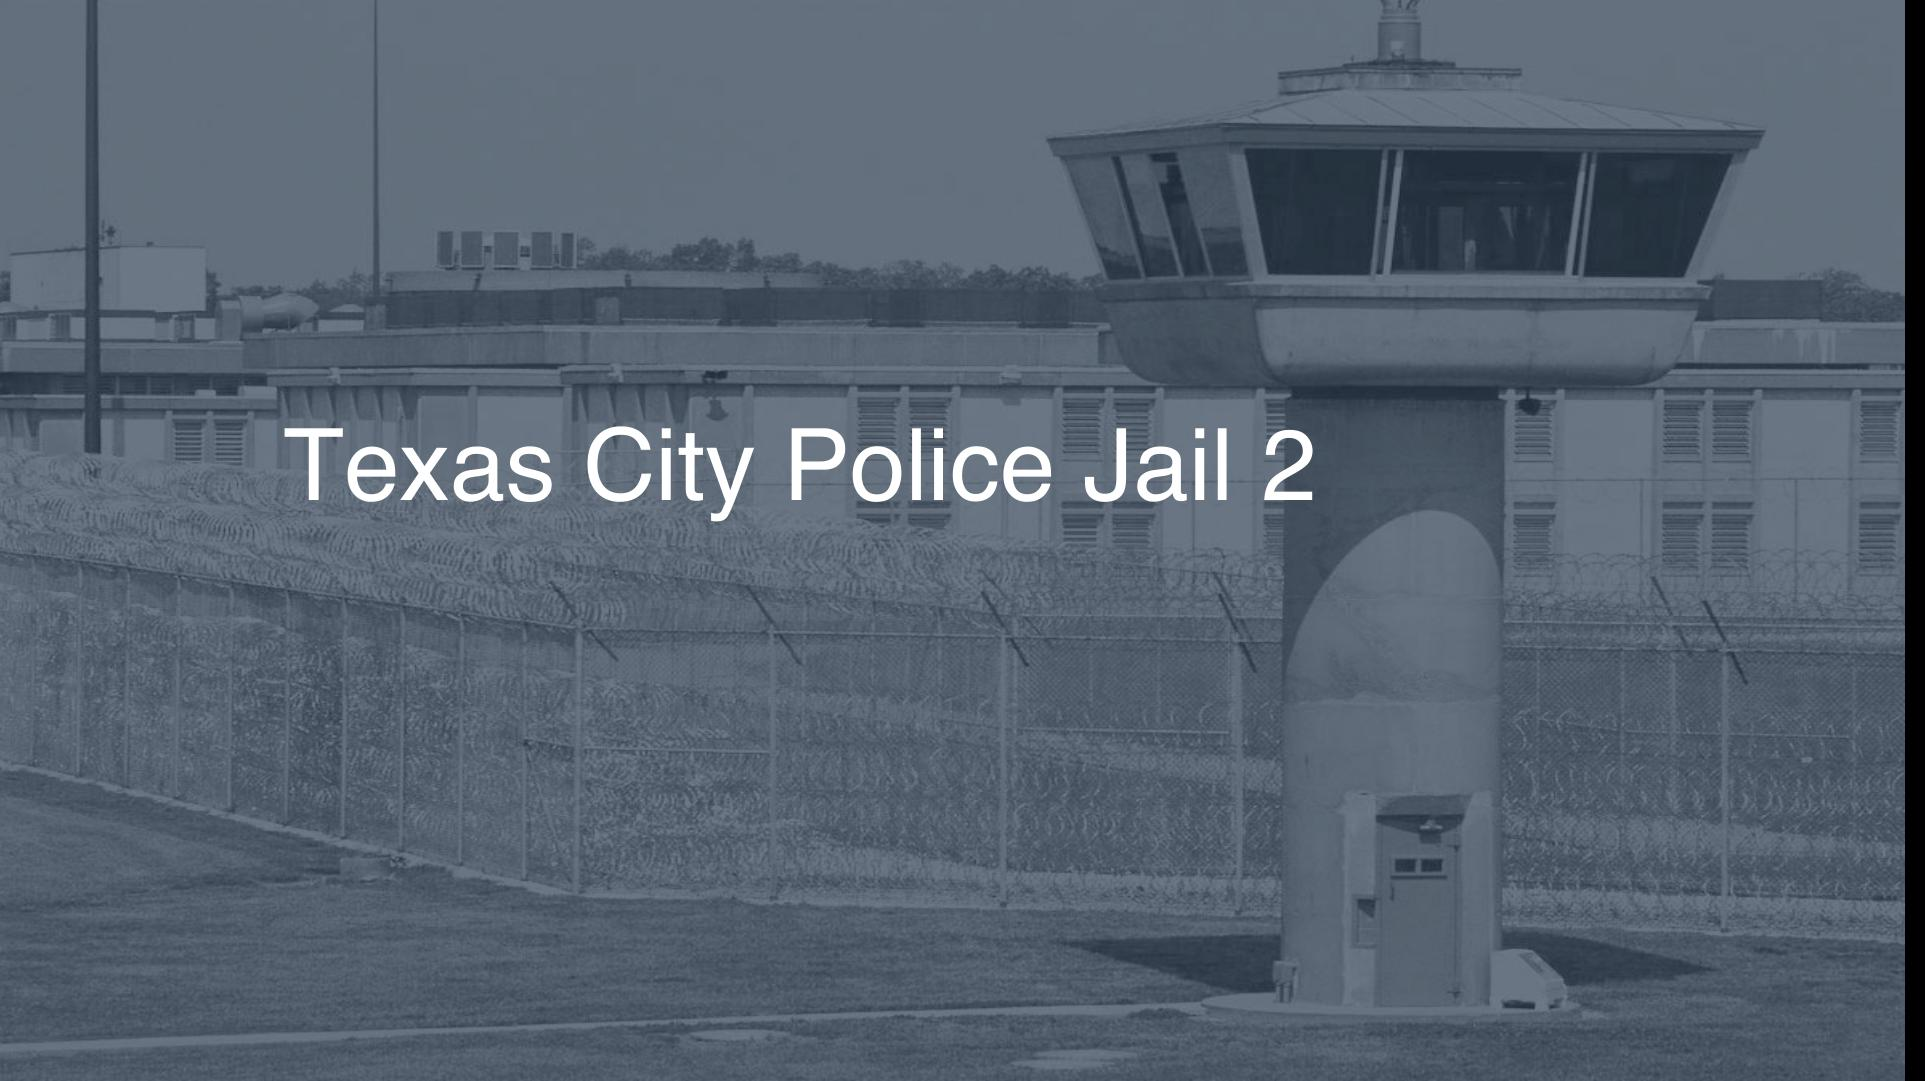 Texas City Police Jail Inmate Search, Lookup & Services - Pigeonly